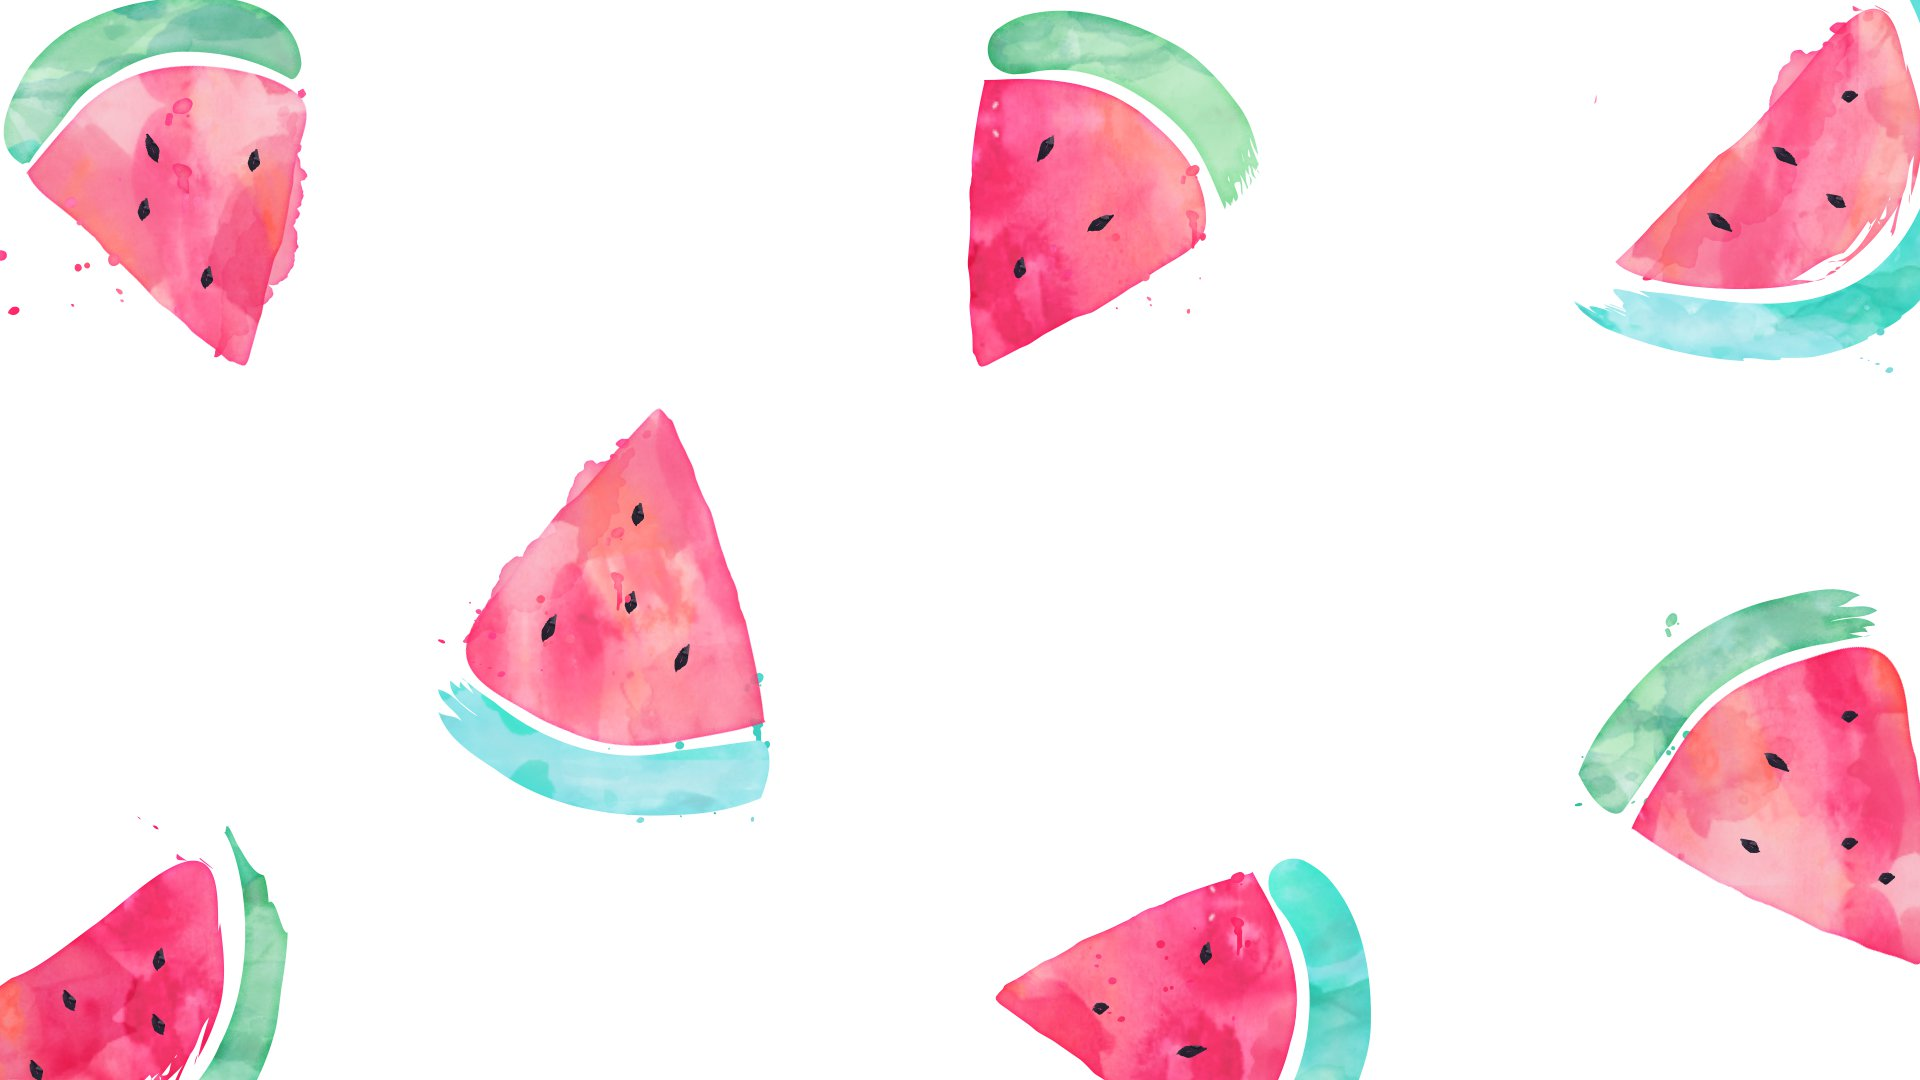 1920x1080 - Watermelon Wallpapers 16